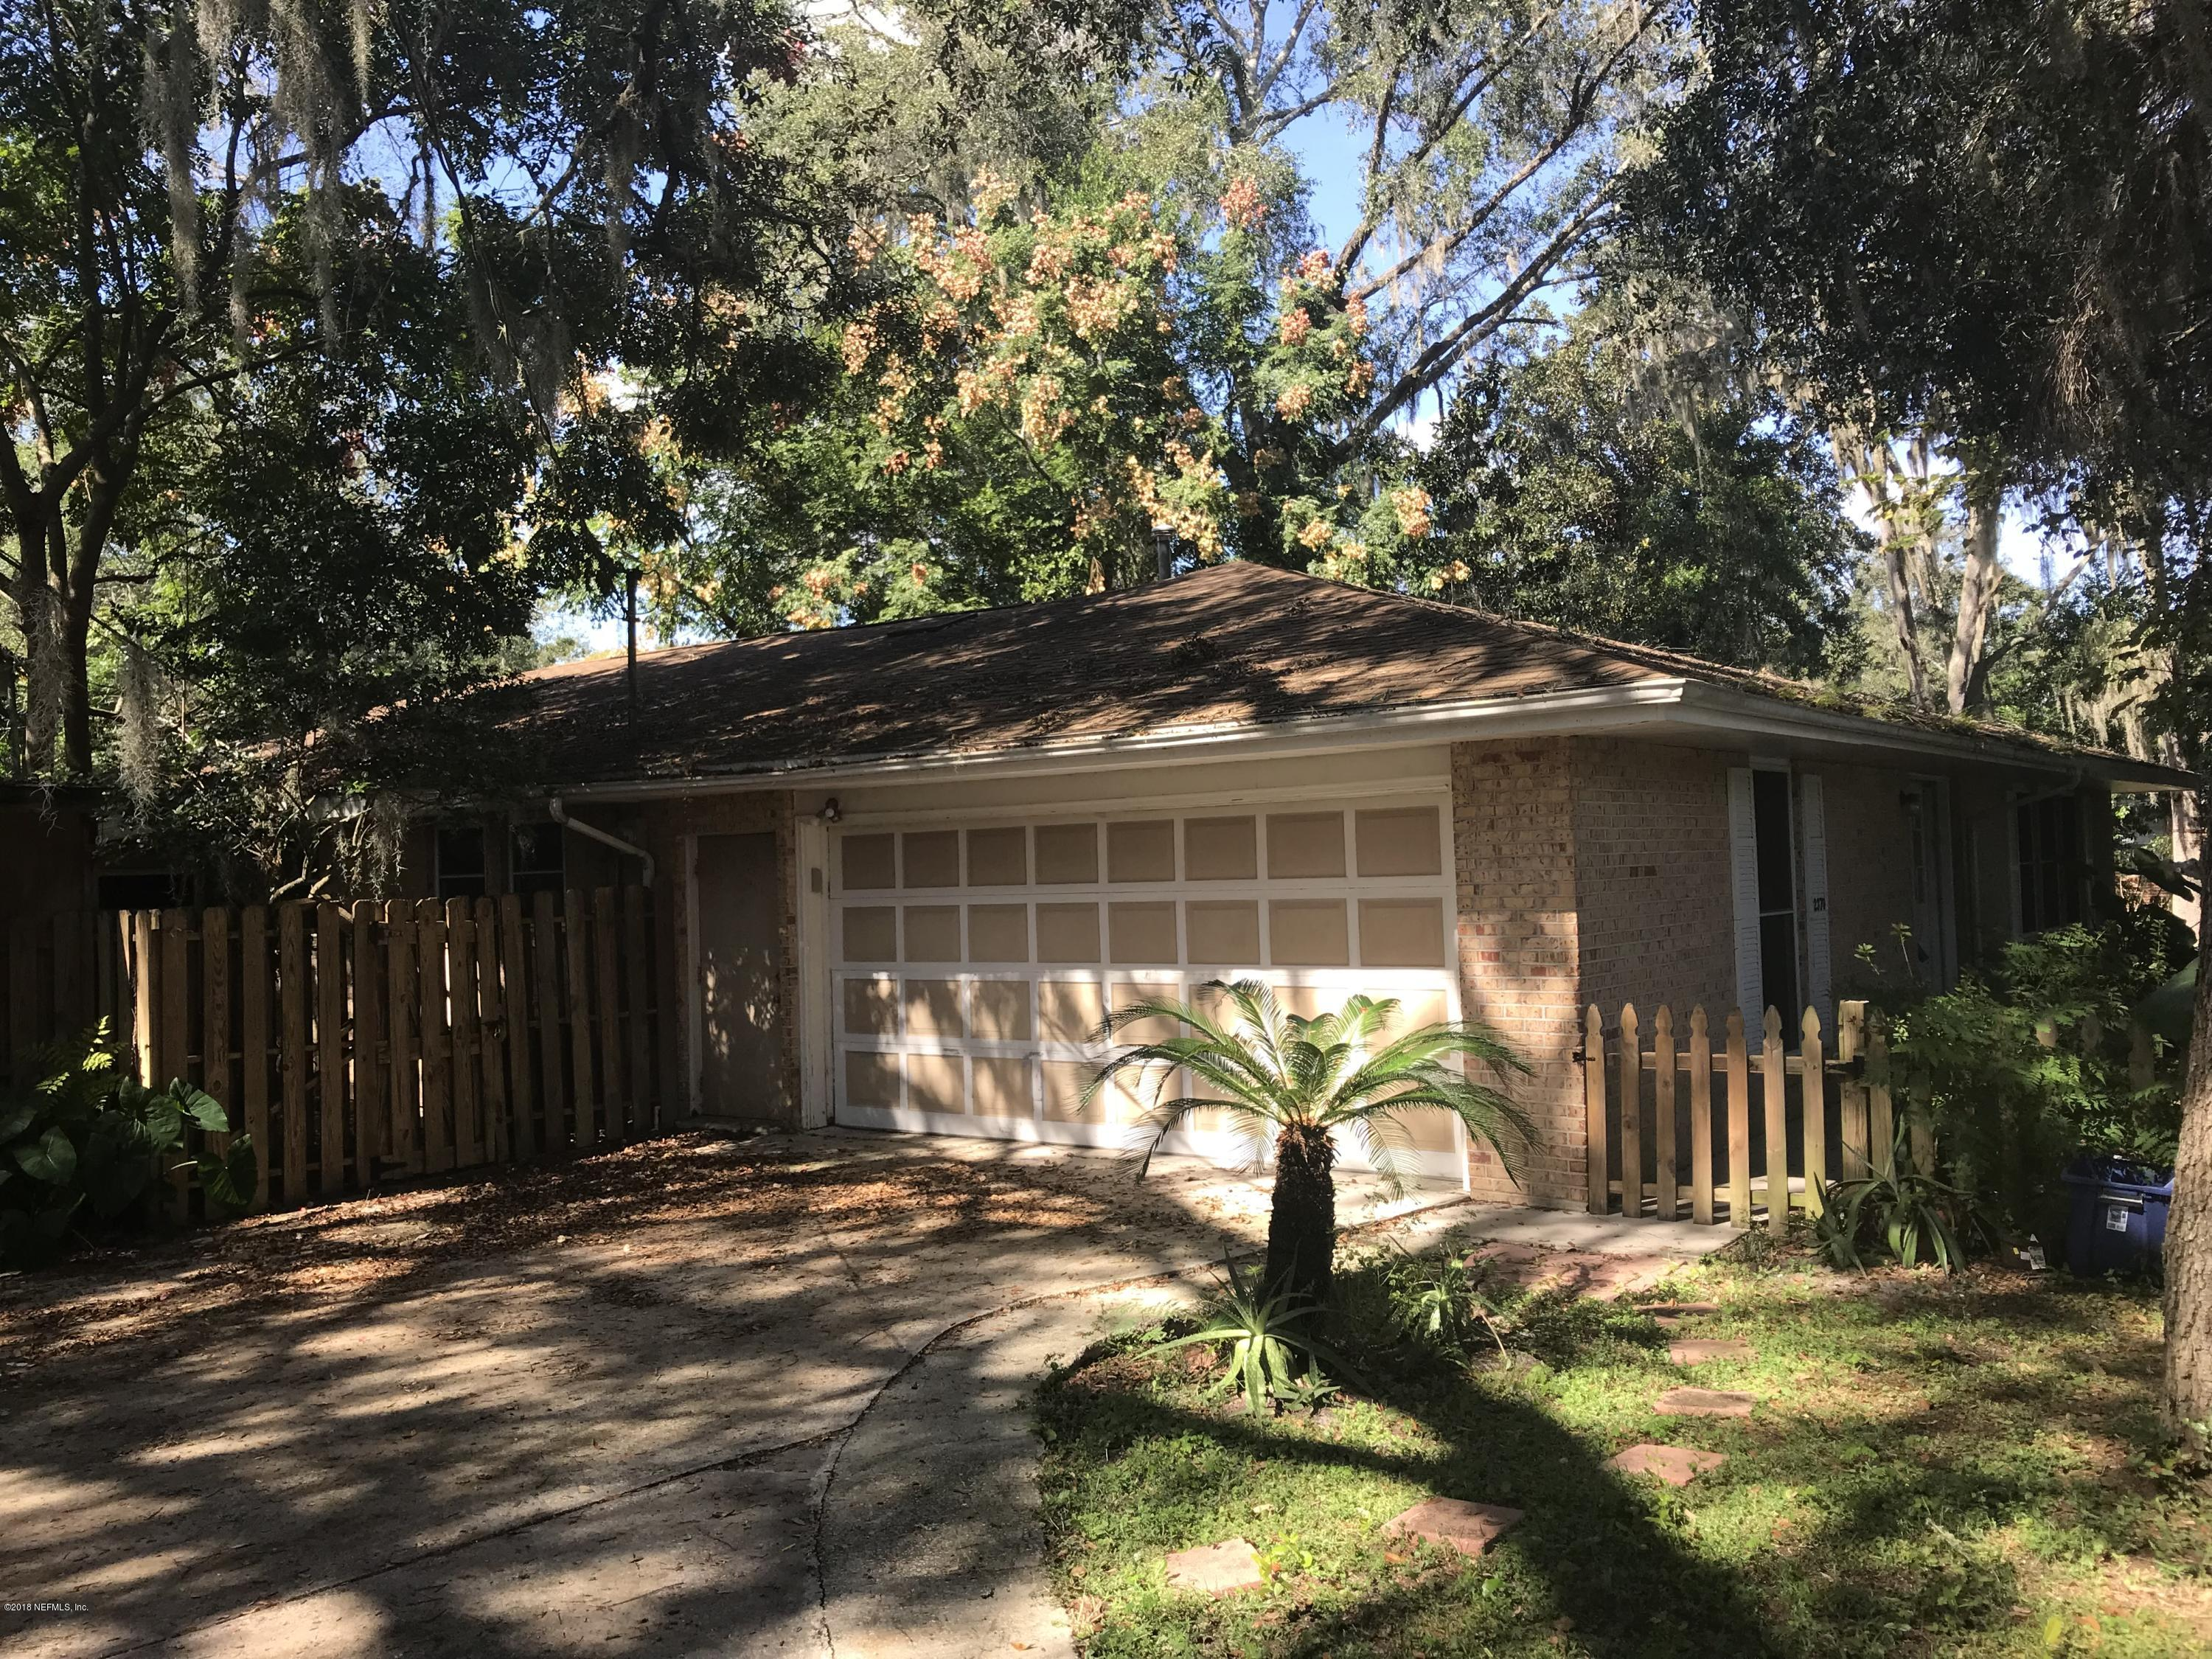 2370 WESTOVER, PALATKA, FLORIDA 32177, 4 Bedrooms Bedrooms, ,3 BathroomsBathrooms,Residential - single family,For sale,WESTOVER,964797